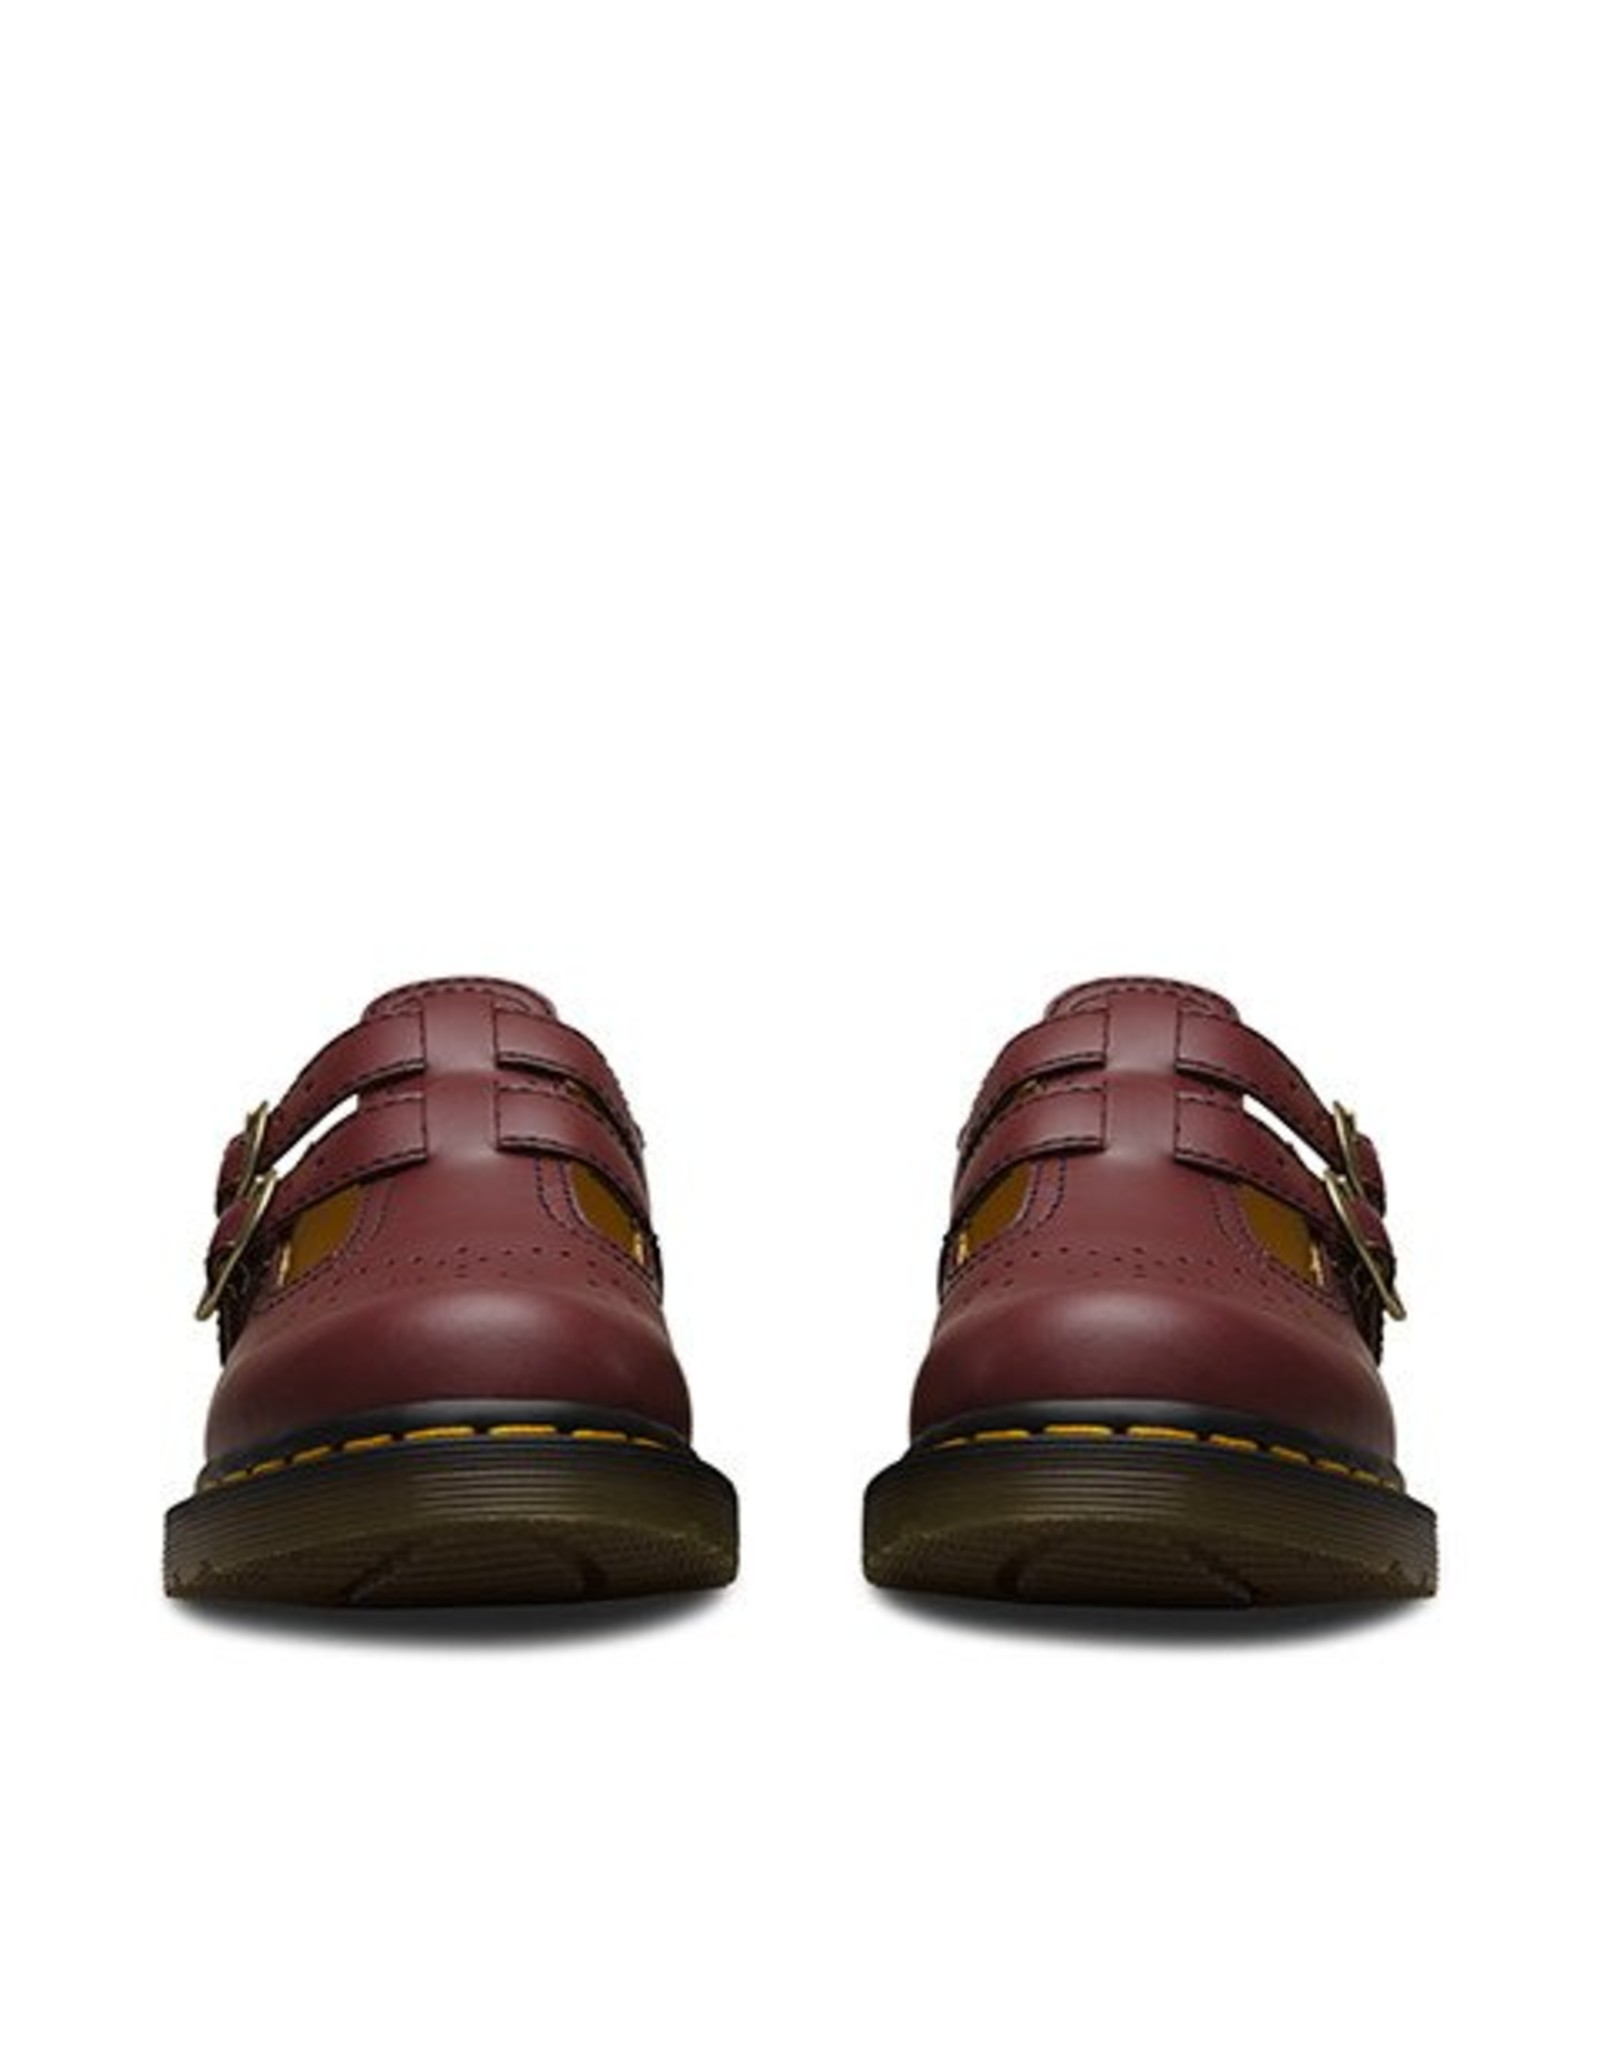 DR. MARTENS 8065 CHERRY RED SMOOTH M92CR-R20159600